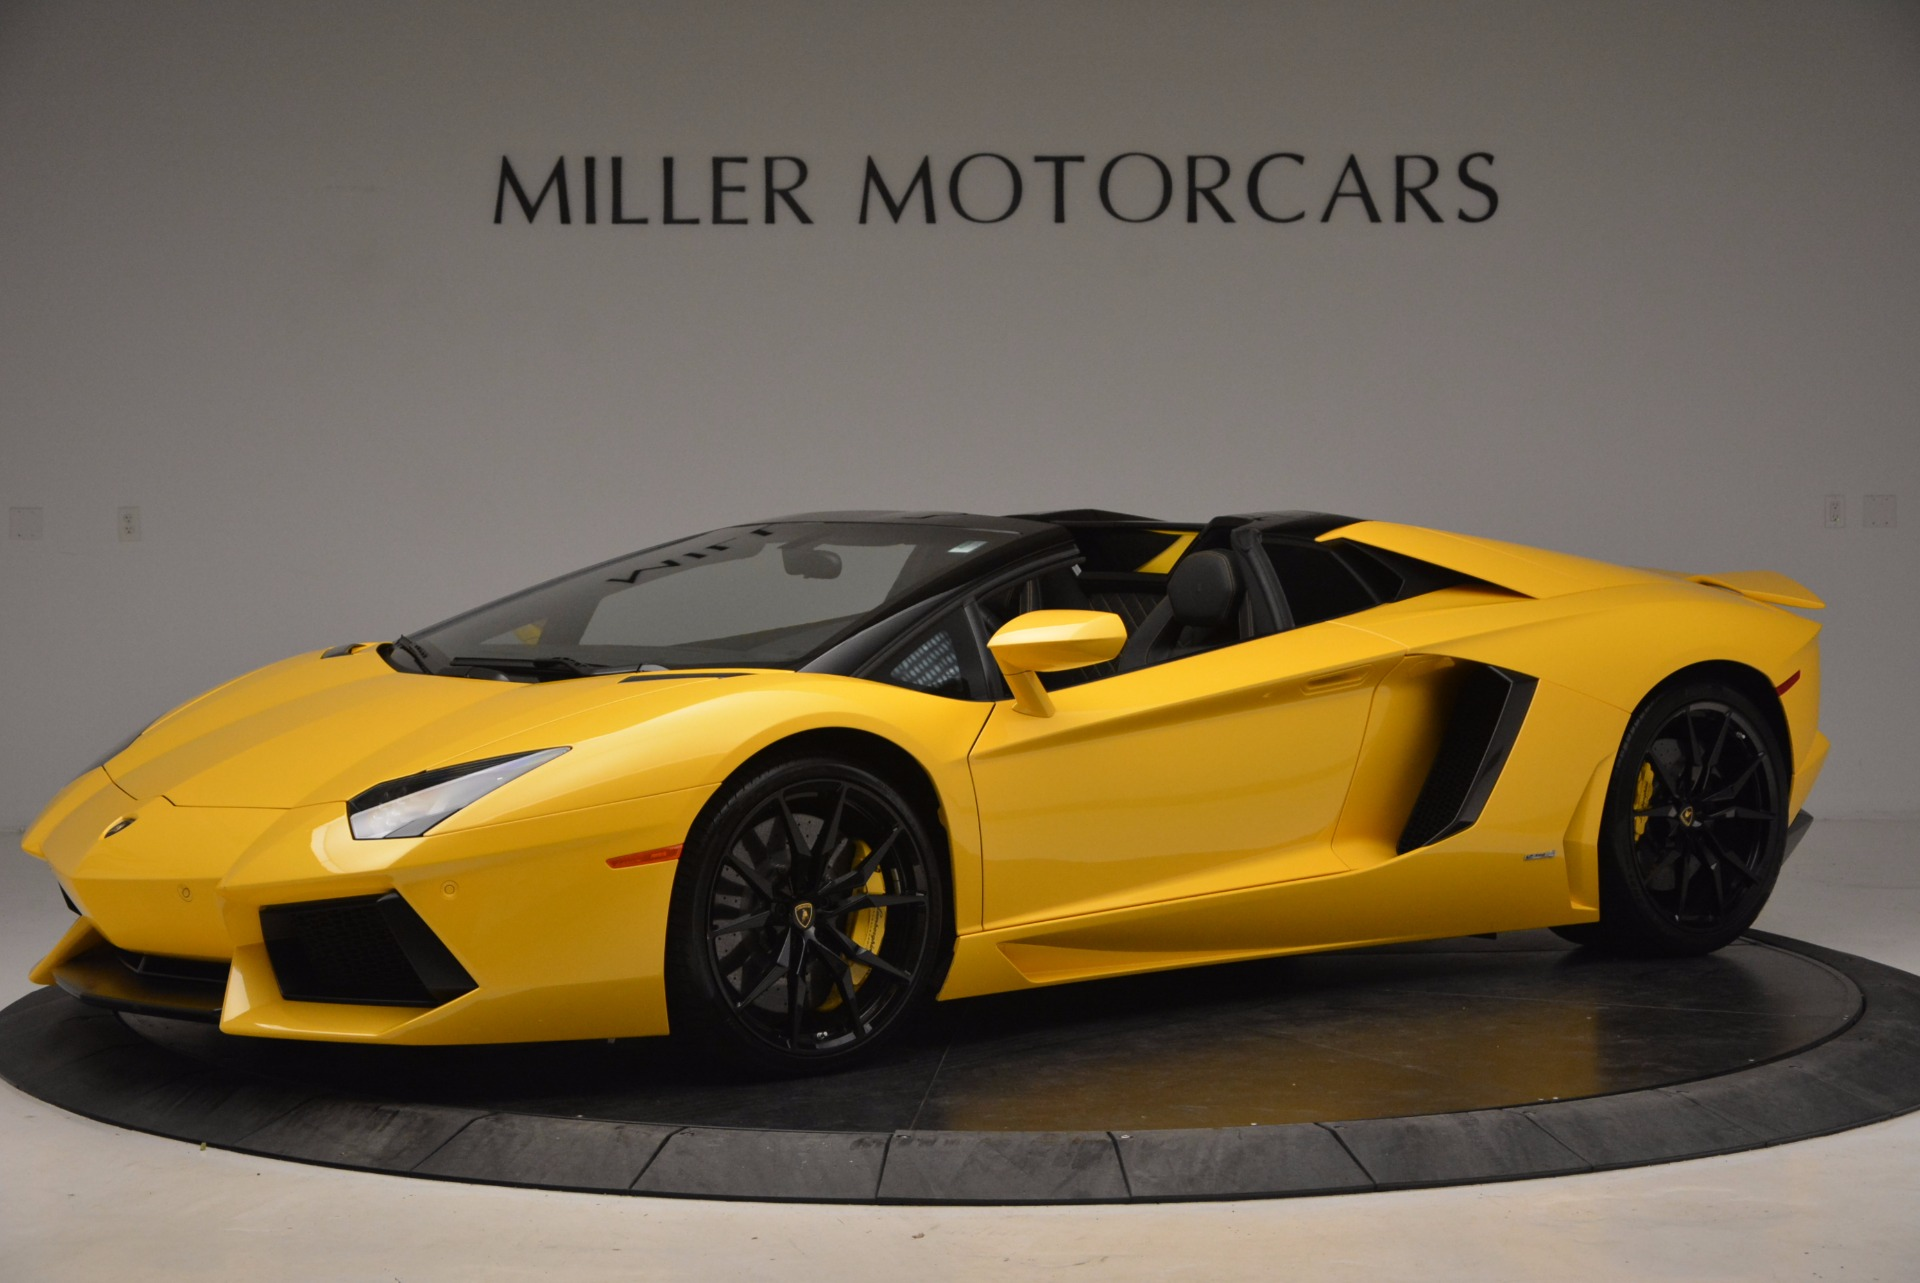 Used 2015 Lamborghini Aventador LP 700-4 Roadster For Sale In Westport, CT 1774_p2